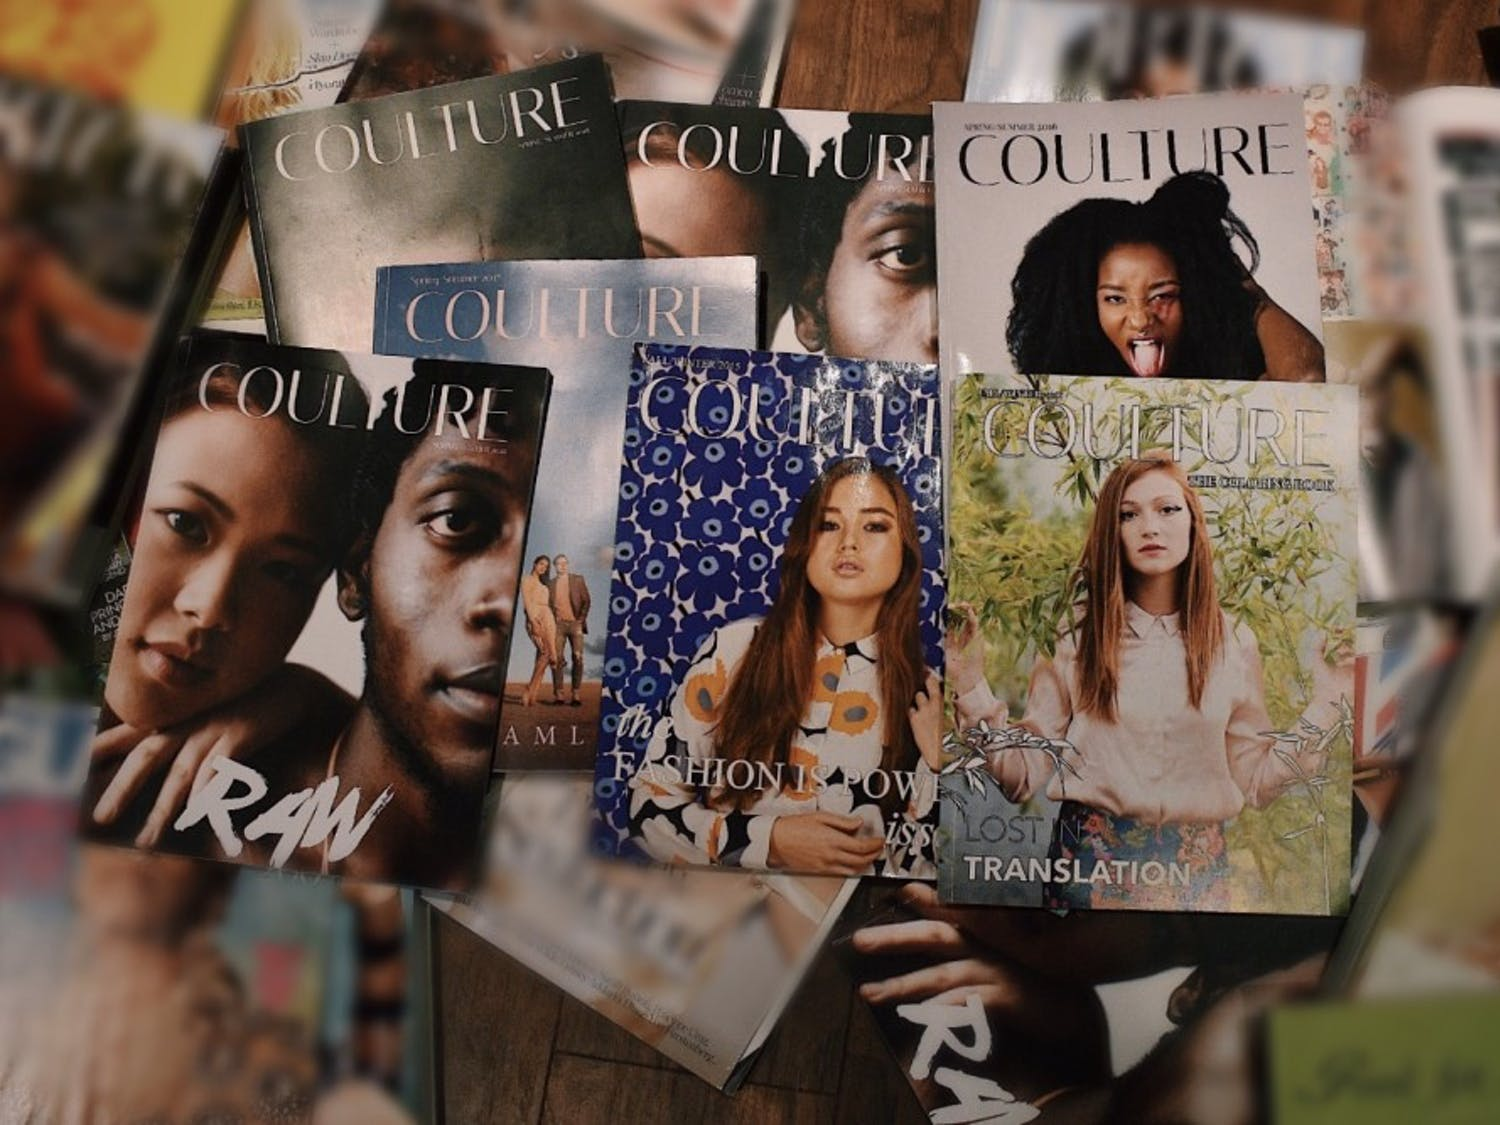 Coulture Magazine is in its third year of production with past issues being a hit on the UNC campus.